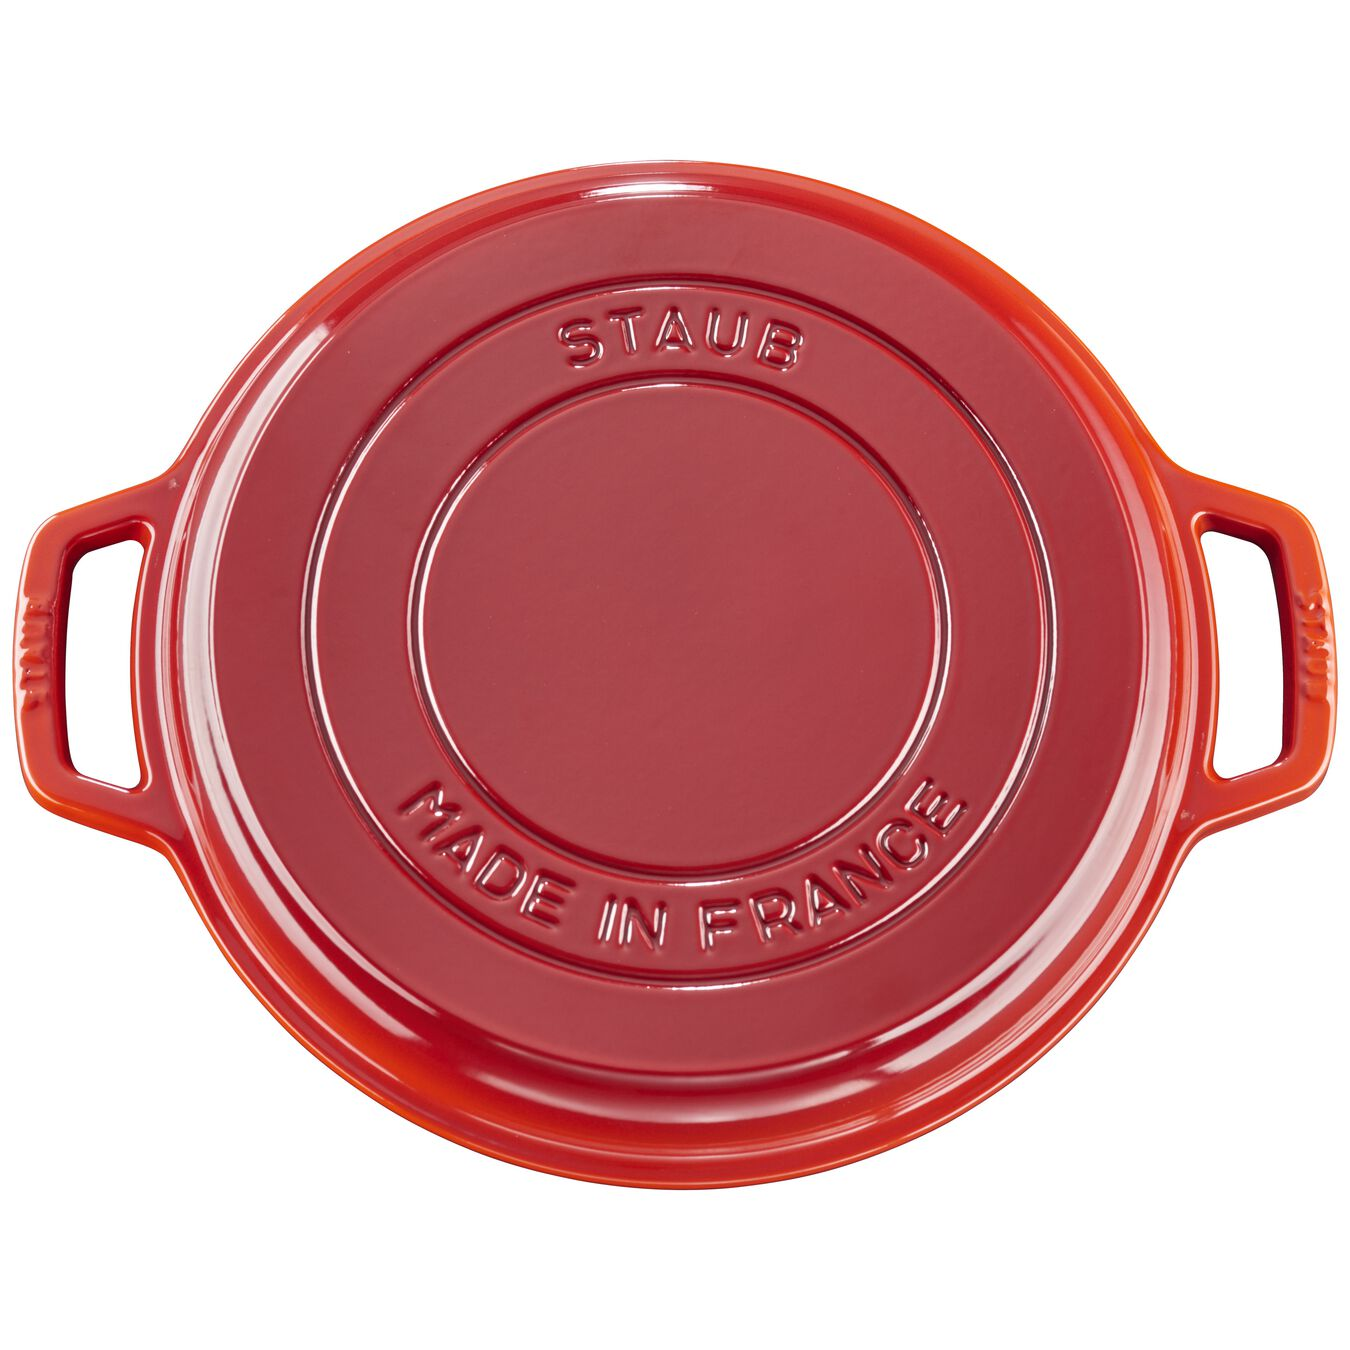 6 l Cast iron round Braise + Grill, Cherry - Visual Imperfections,,large 6